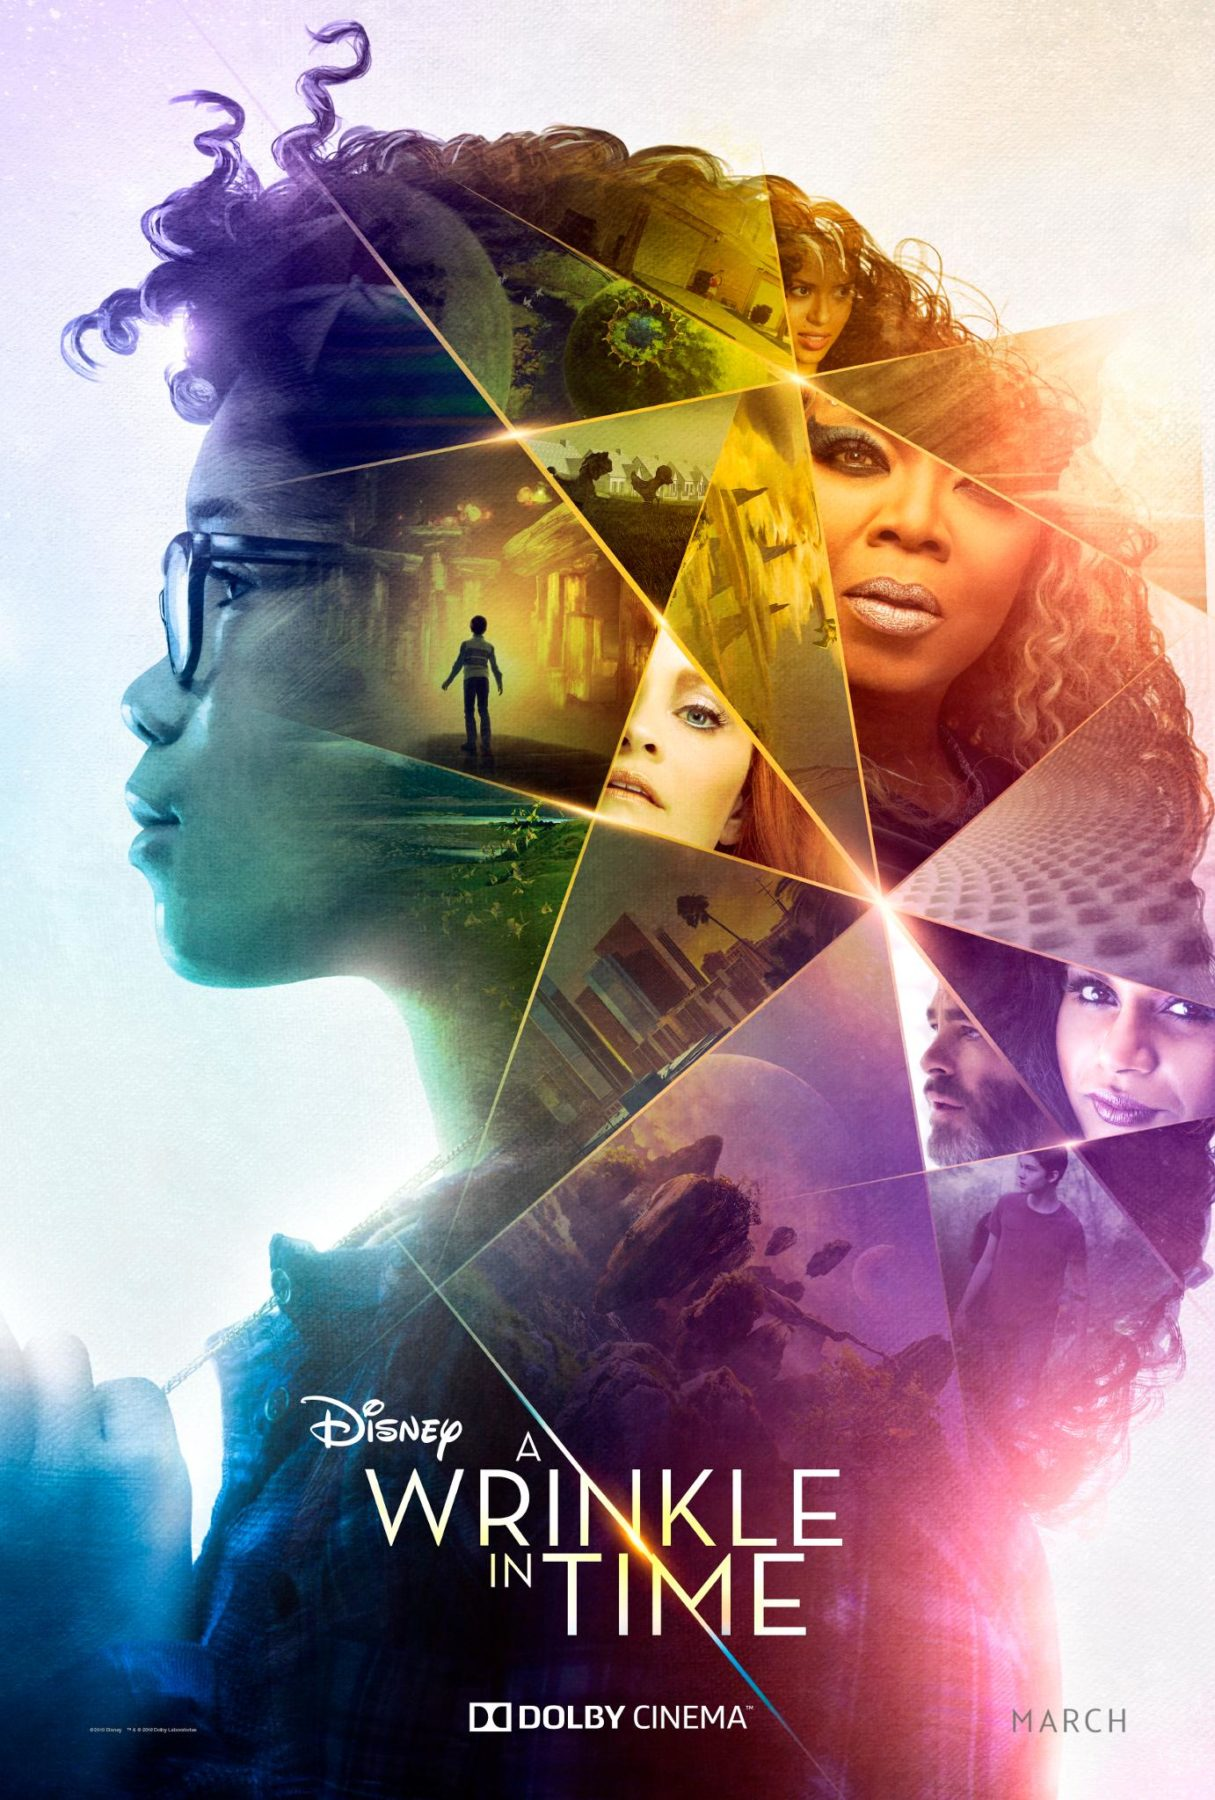 Disney S A Wrinkle In Time Gets A New Poster